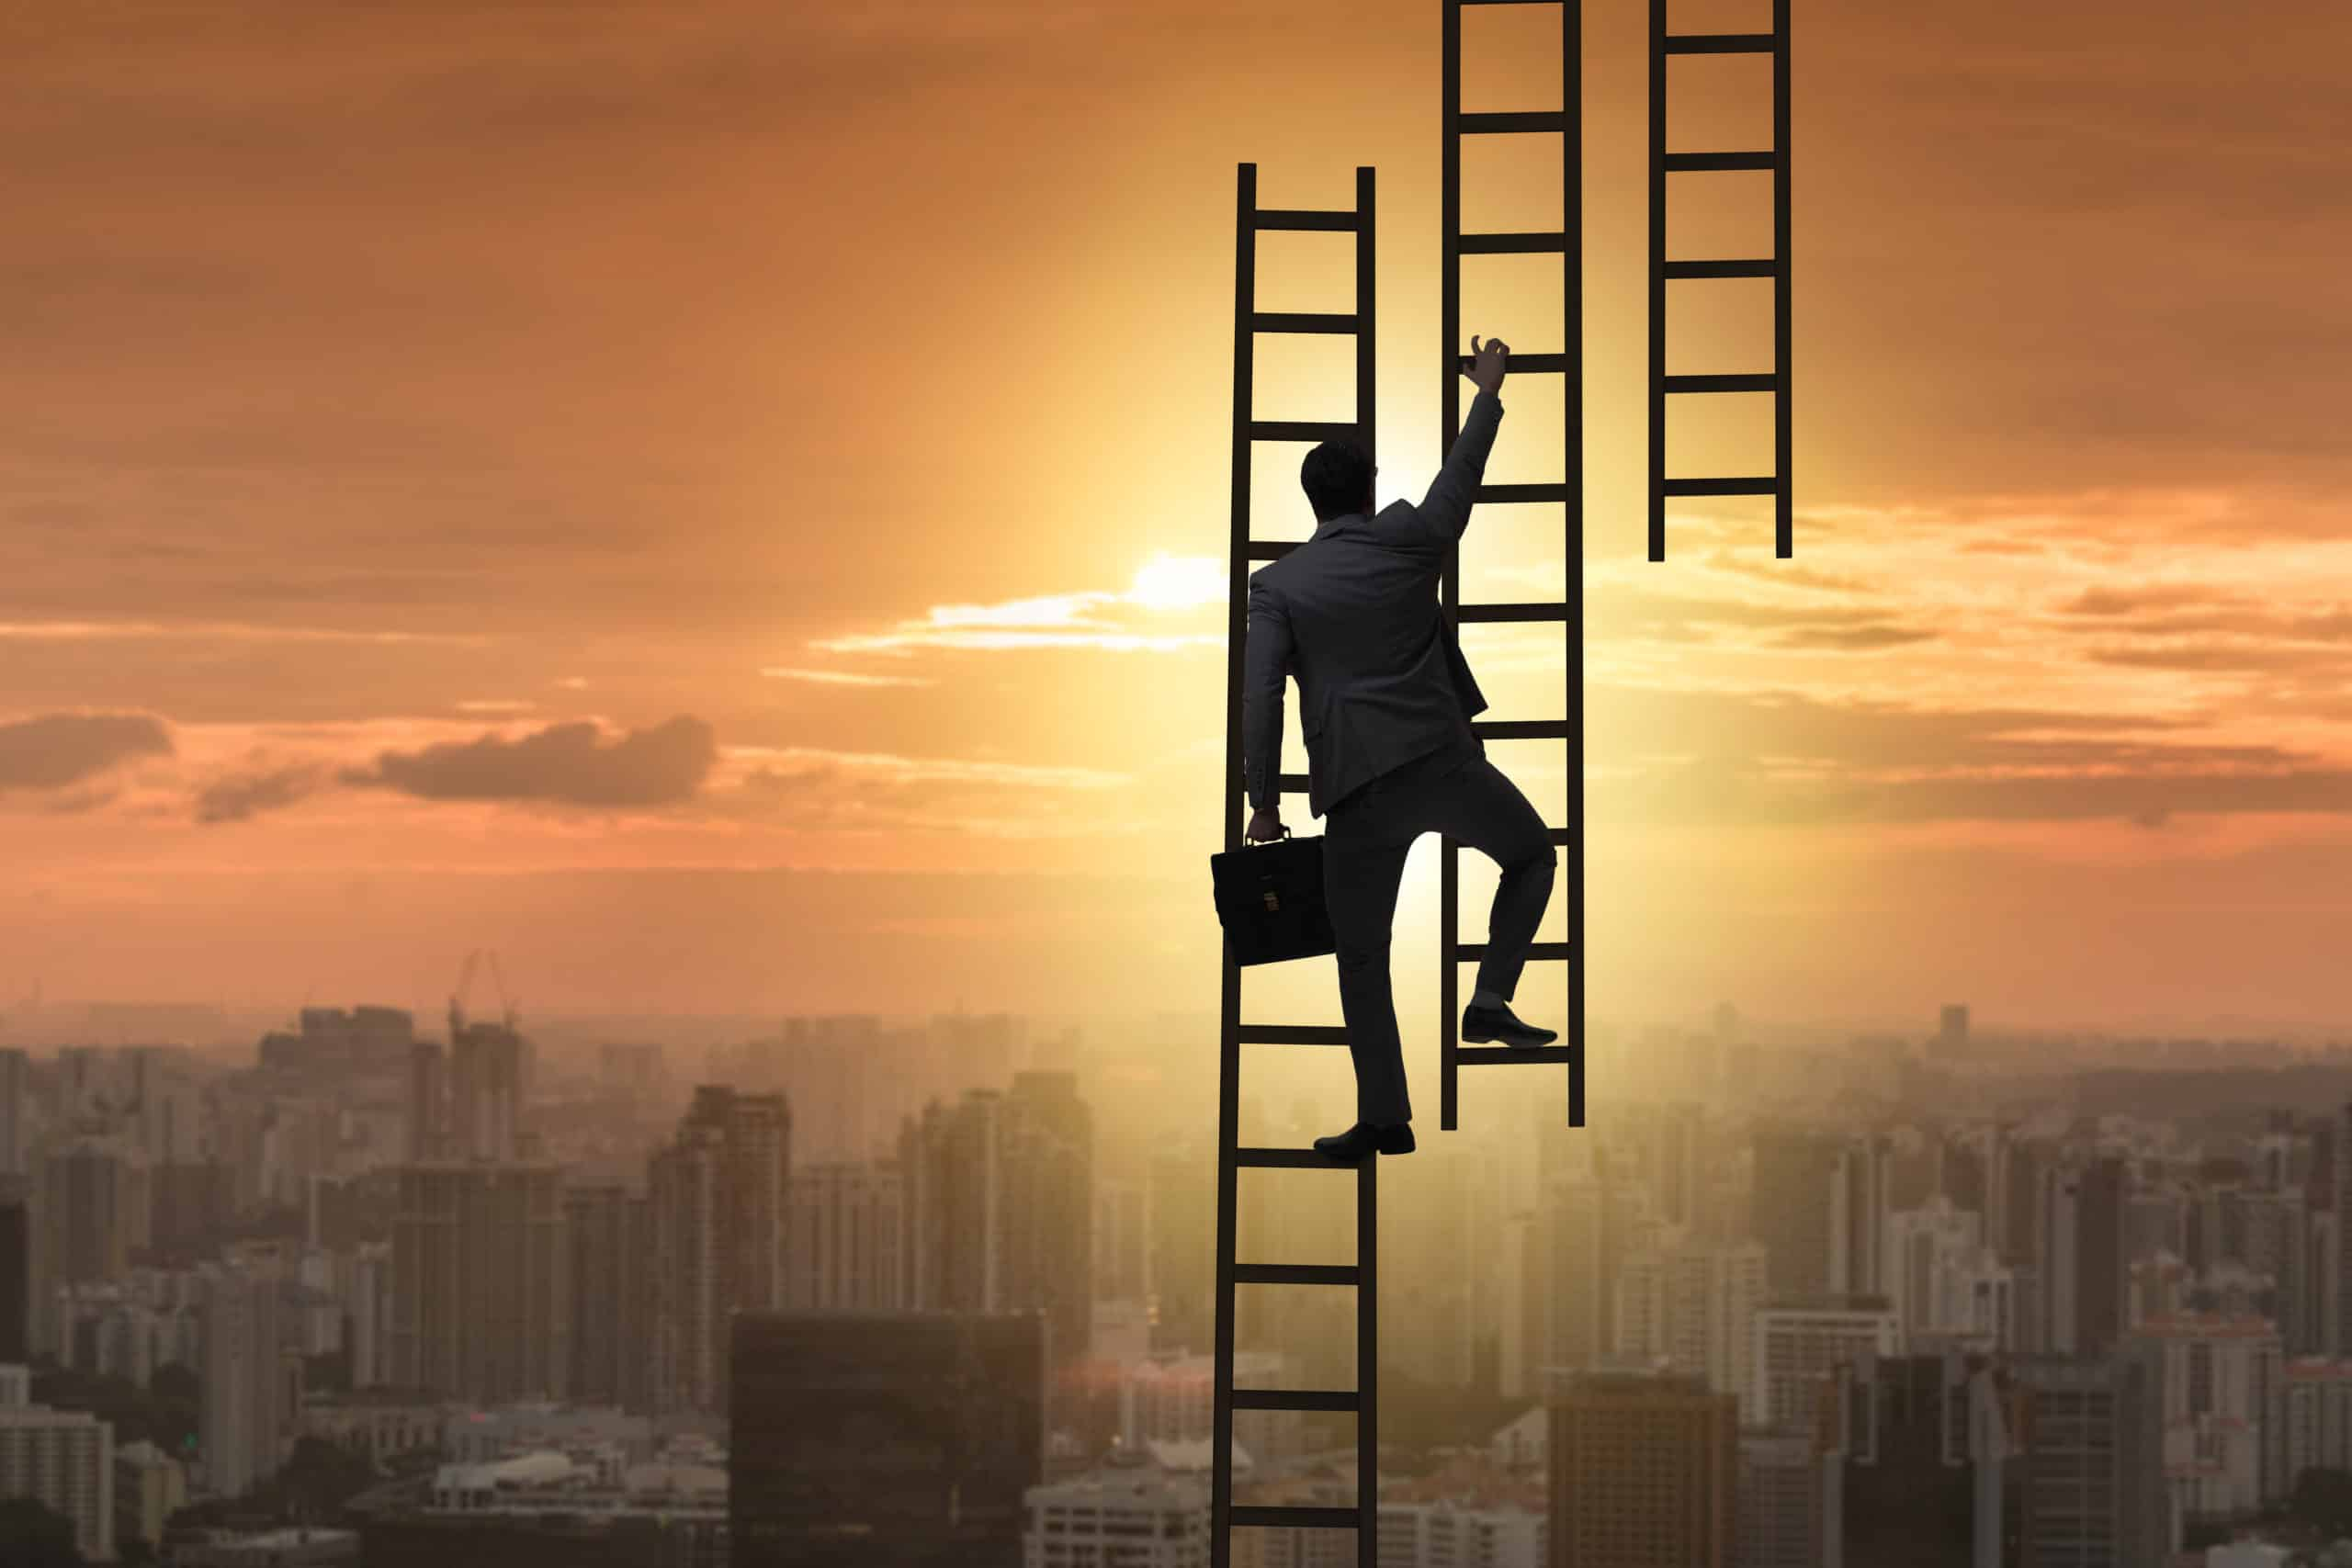 climbing ladder in business suit